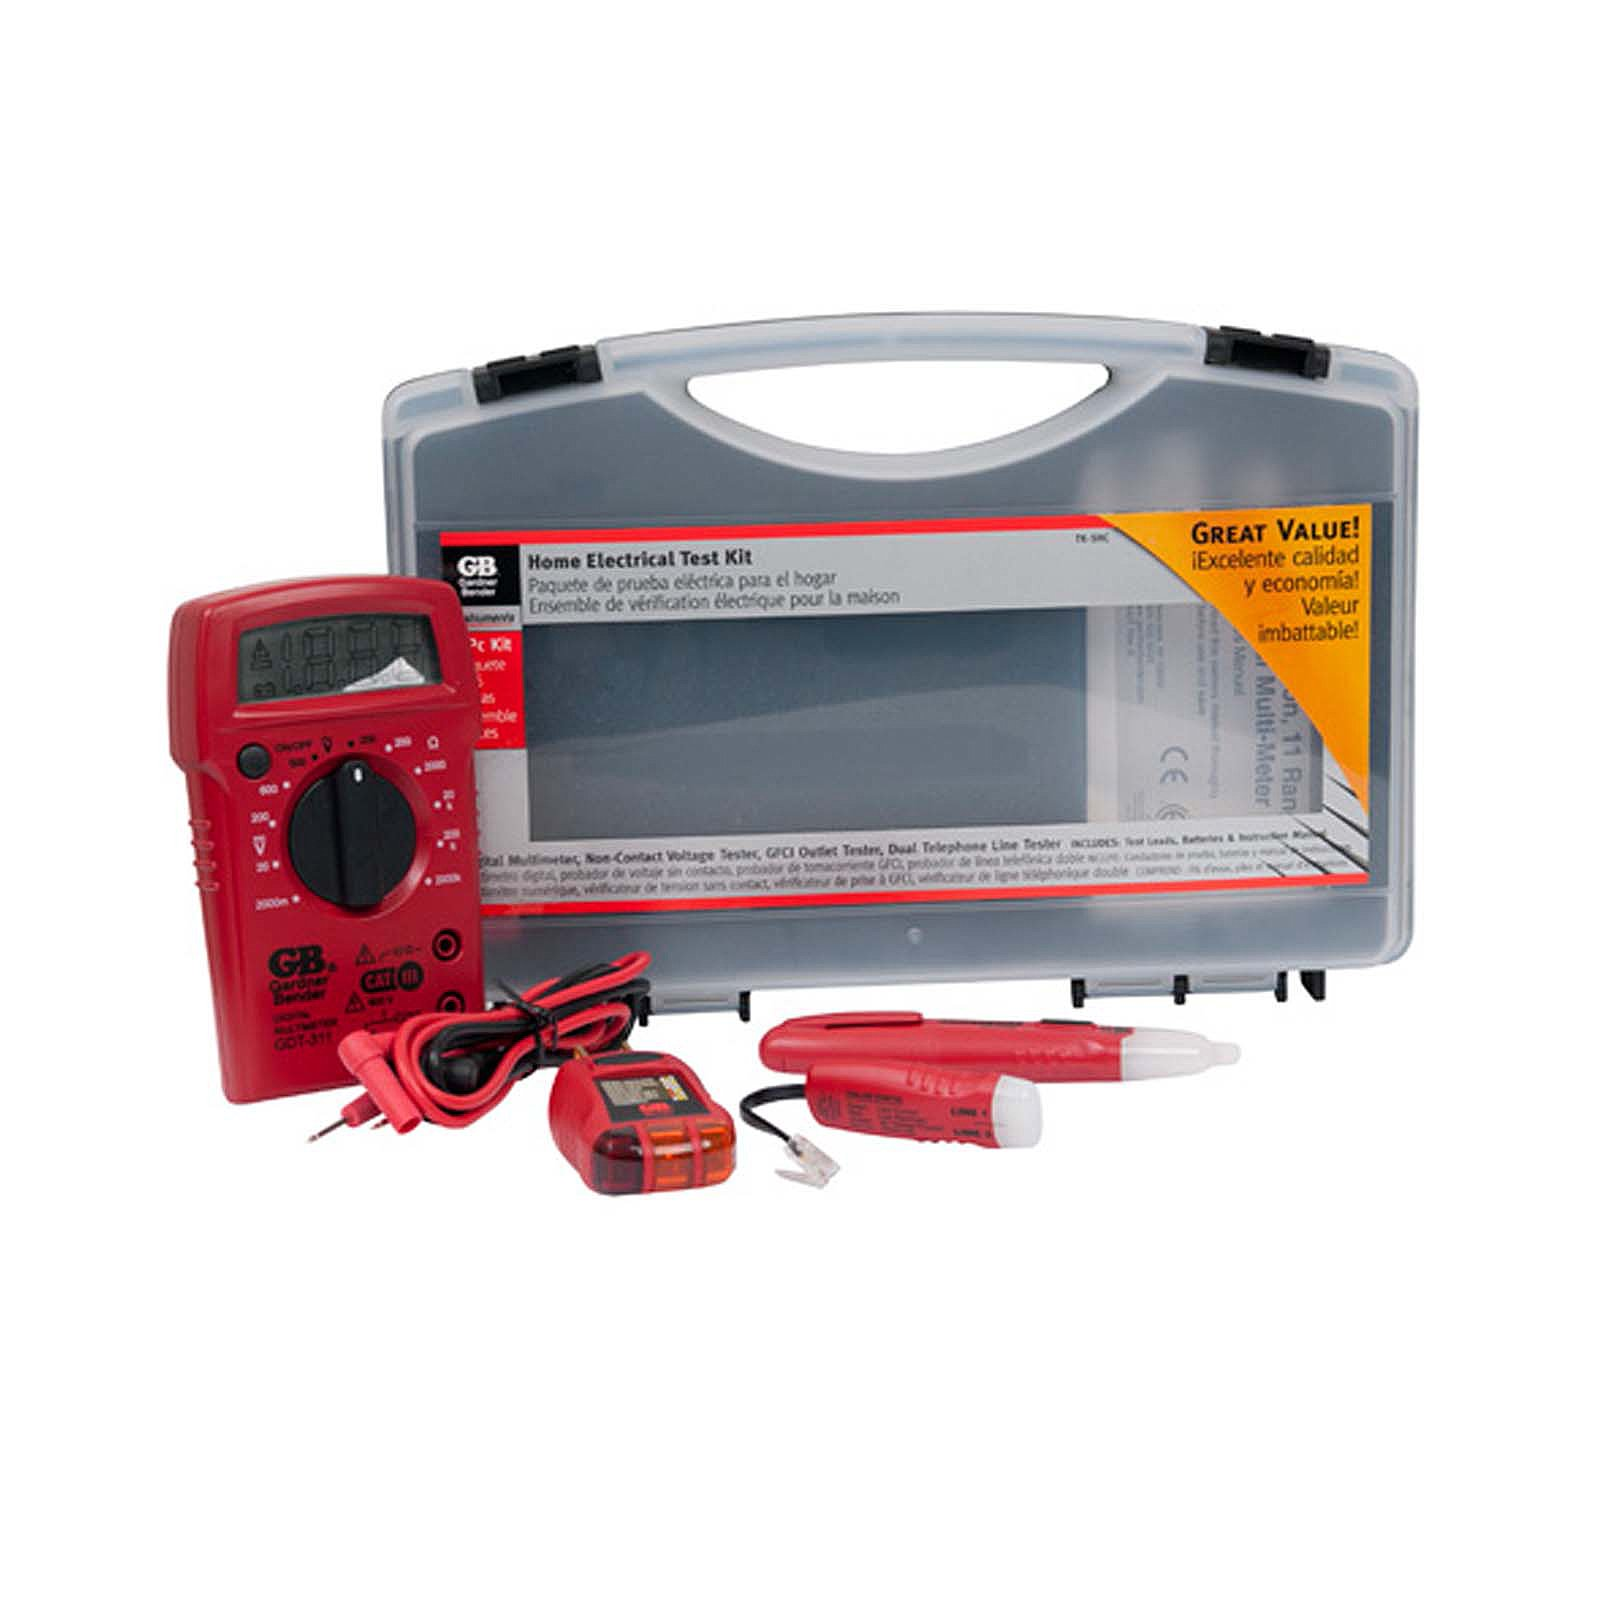 Gardner Bender TK-5HCN Home Electrical / Electrician Tester Kit Includes Digital MultiMeter (GDT-311), Non-Contact Voltage Tester (GVD-3504), GFCI Outlet Tester (GFI-3504), Dual Phone Line Tester (GTT-3200), & Replacement Test Leads (RTL-103), 4 Pc. Kit,